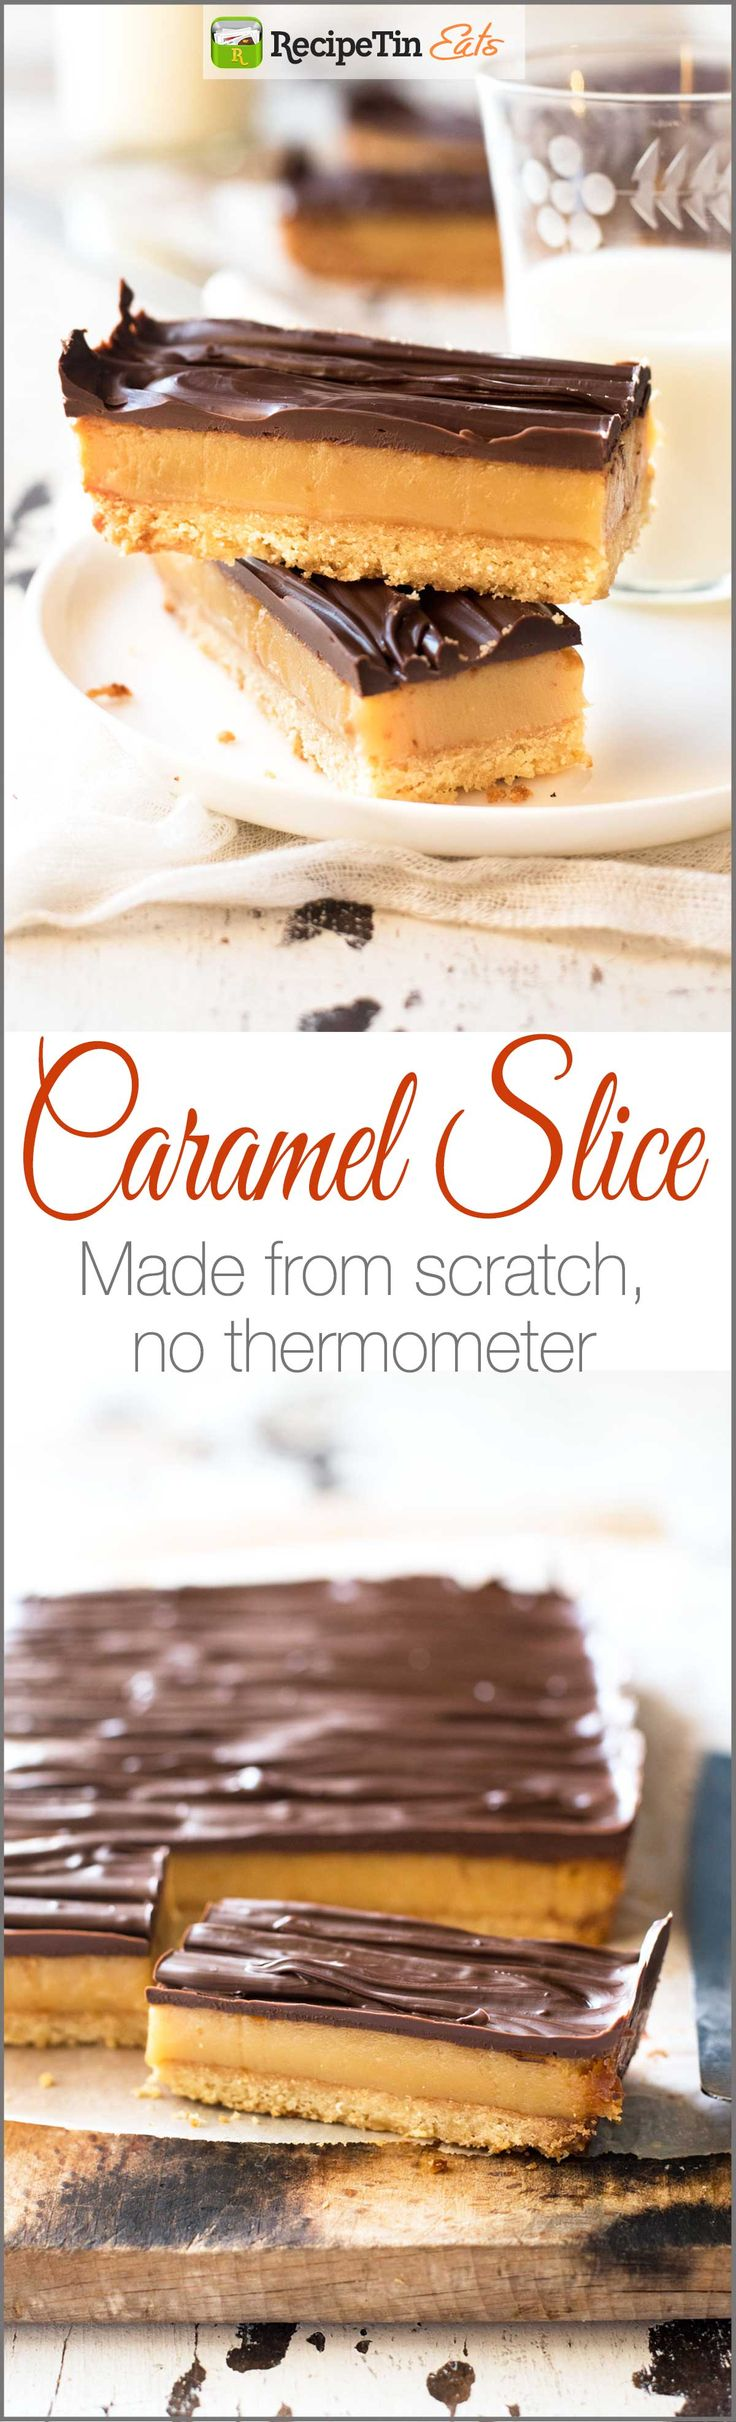 Chocolate Caramel Slice - Learn the secret to a perfect soft set caramel filling WITHOUT using a thermometer....it's so easy!